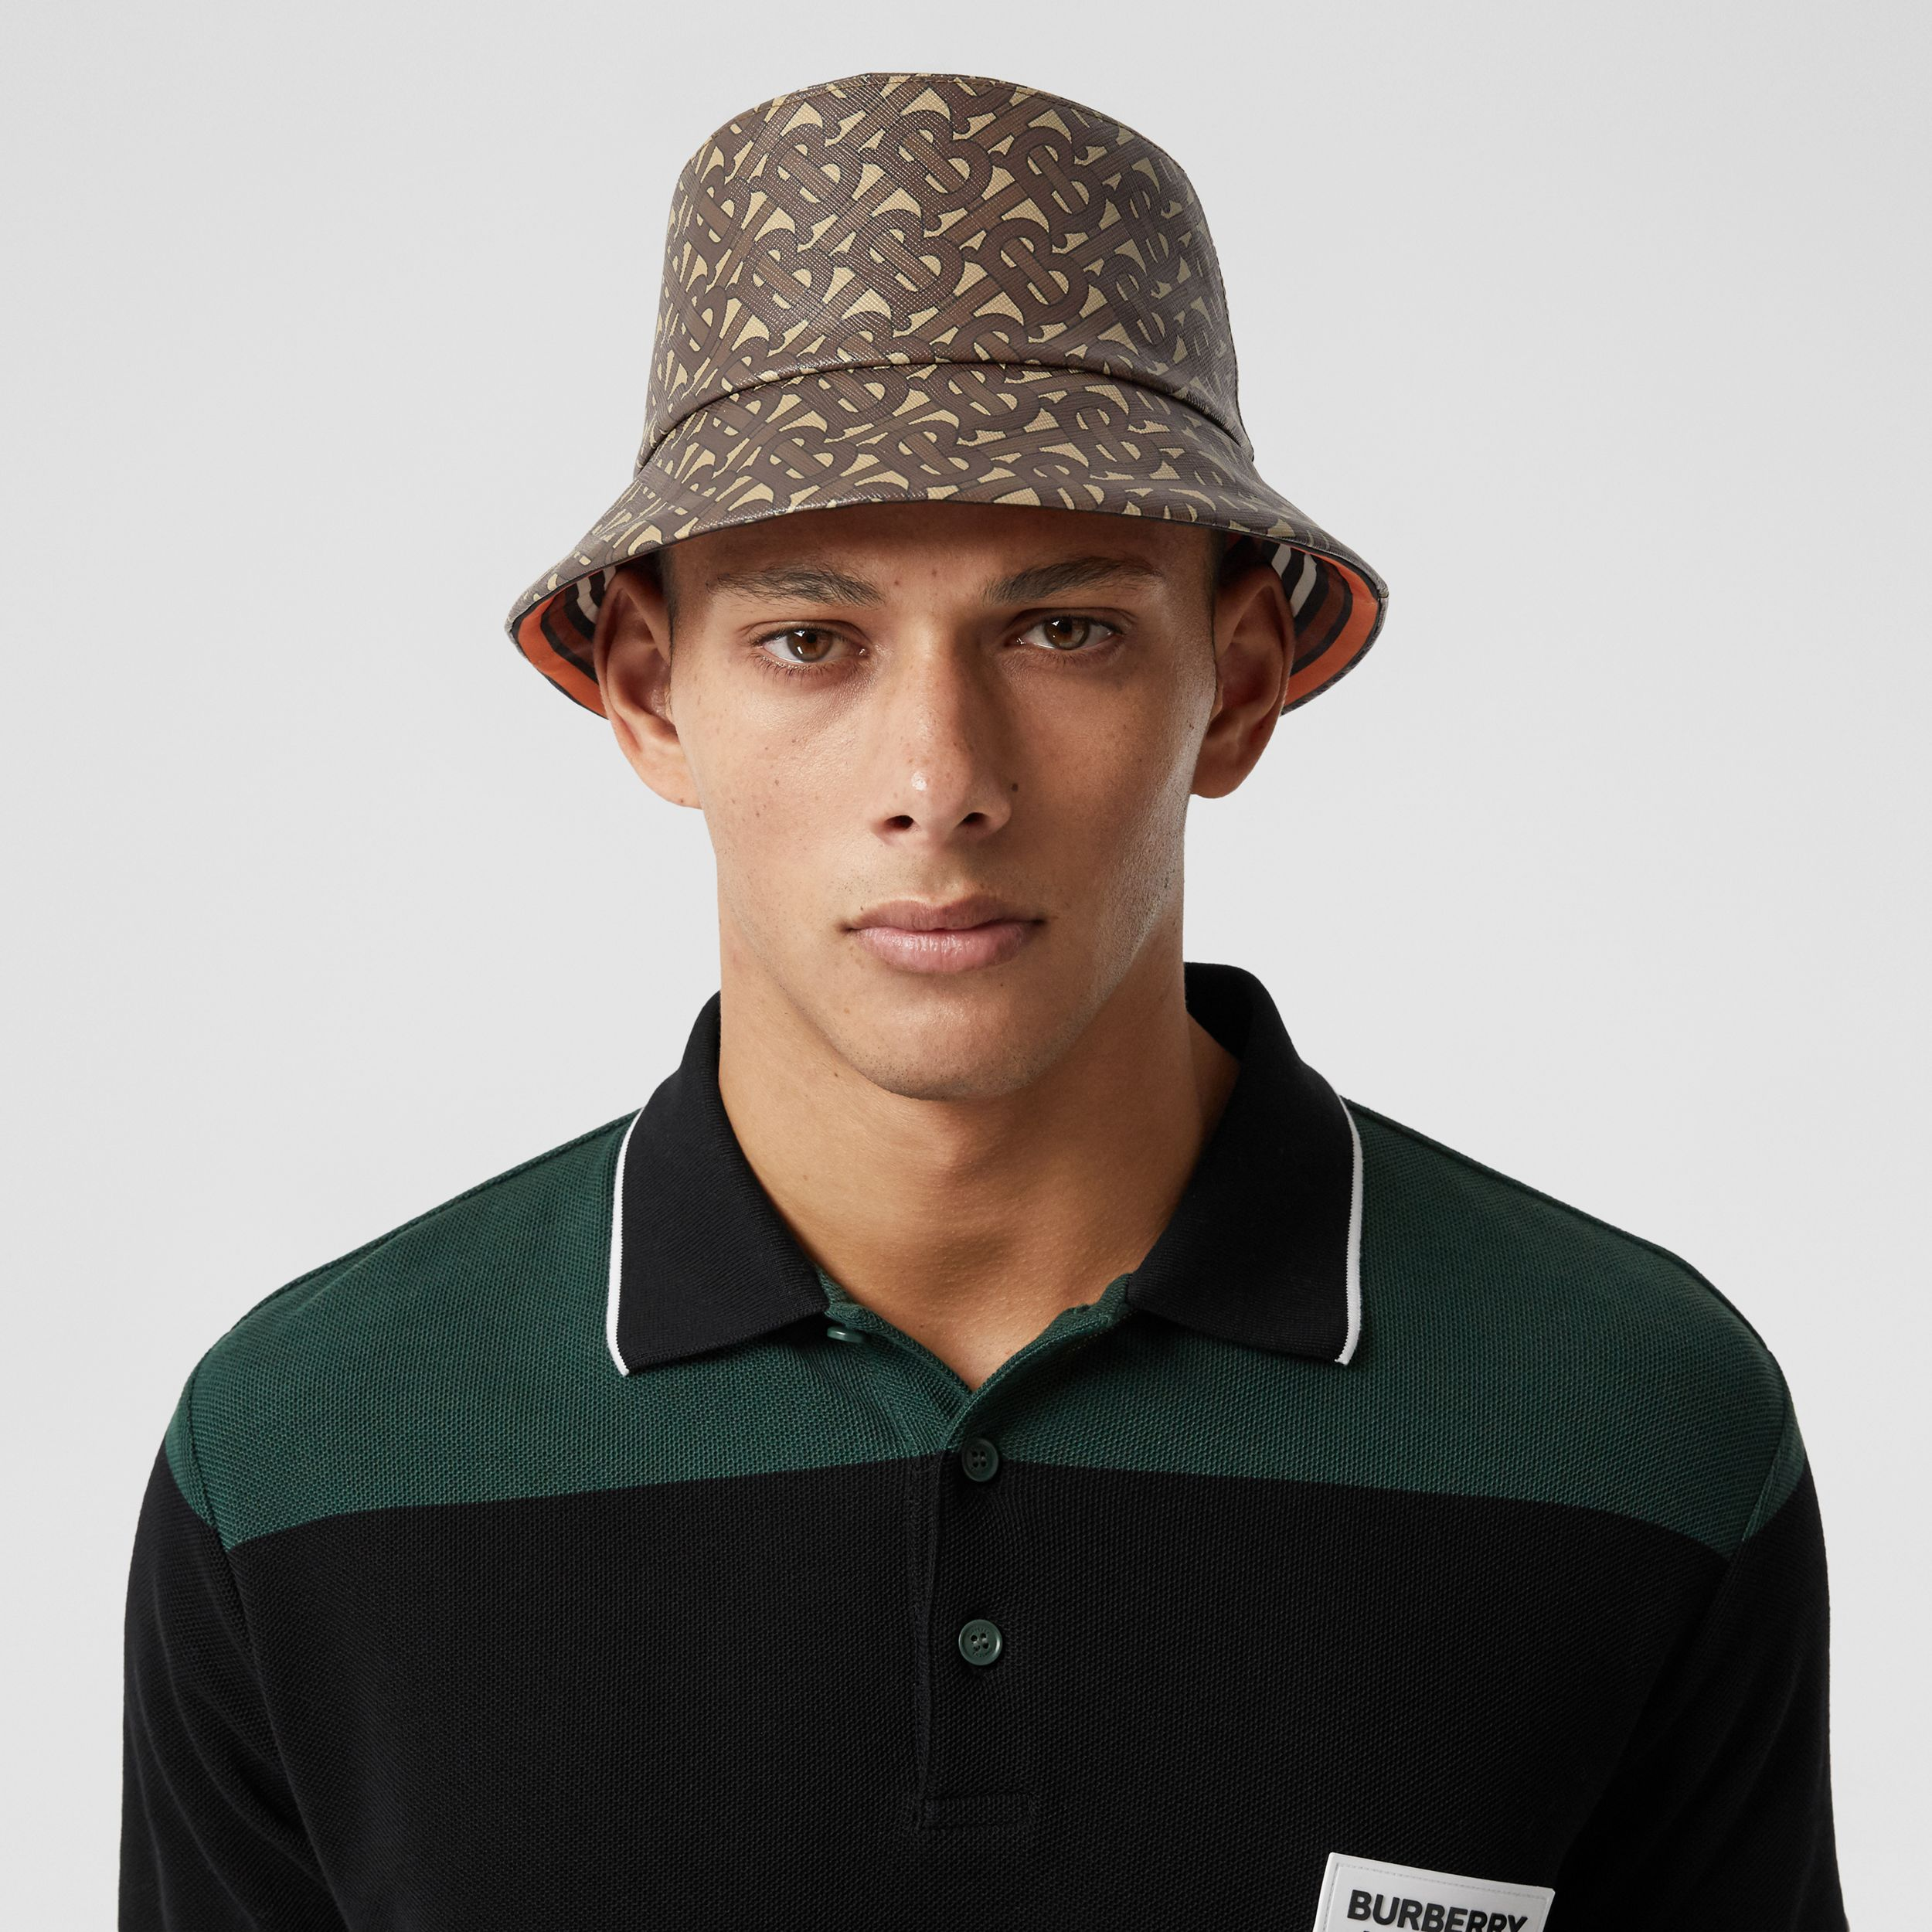 Monogram Print Bucket Hat in Bridle Brown | Burberry - 4